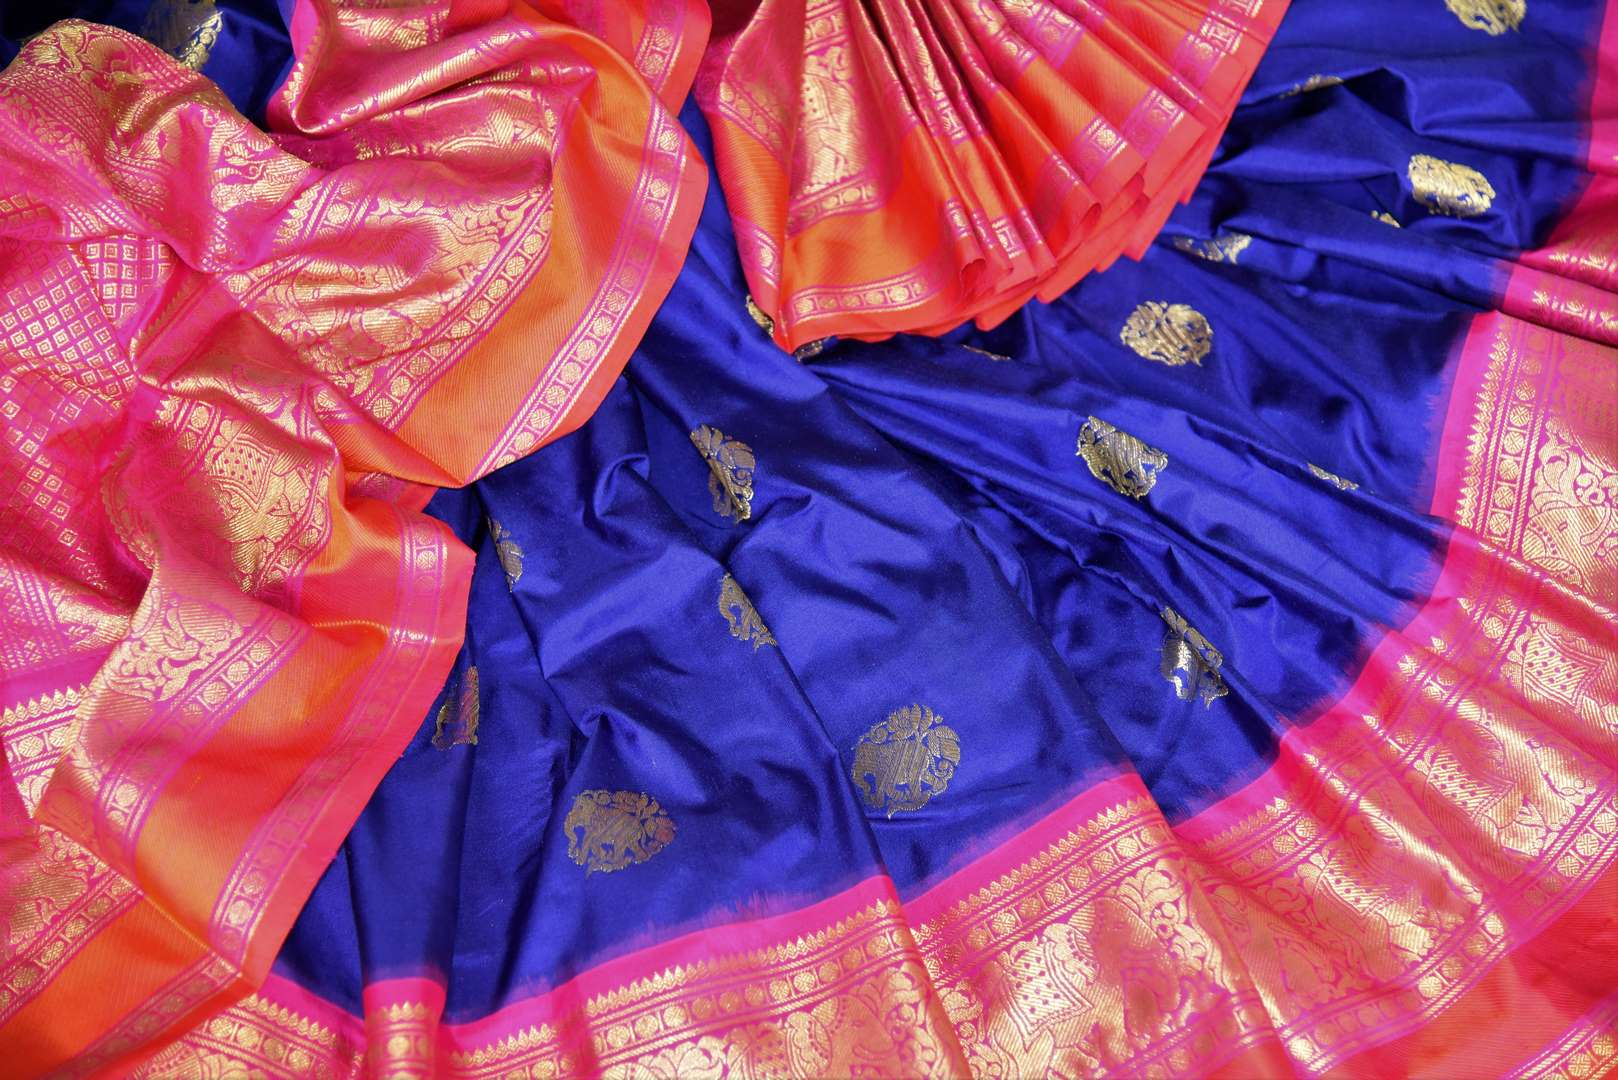 Buy stunning blue kanji ikkat saree online in USA with pink zari border and zari buta. Add the richness of Indian culture to your saree look with Kanjeevaram silk saris, Indian designer saris, bridal sarees from Pure Elegance Indian clothing in USA or shop online.-details